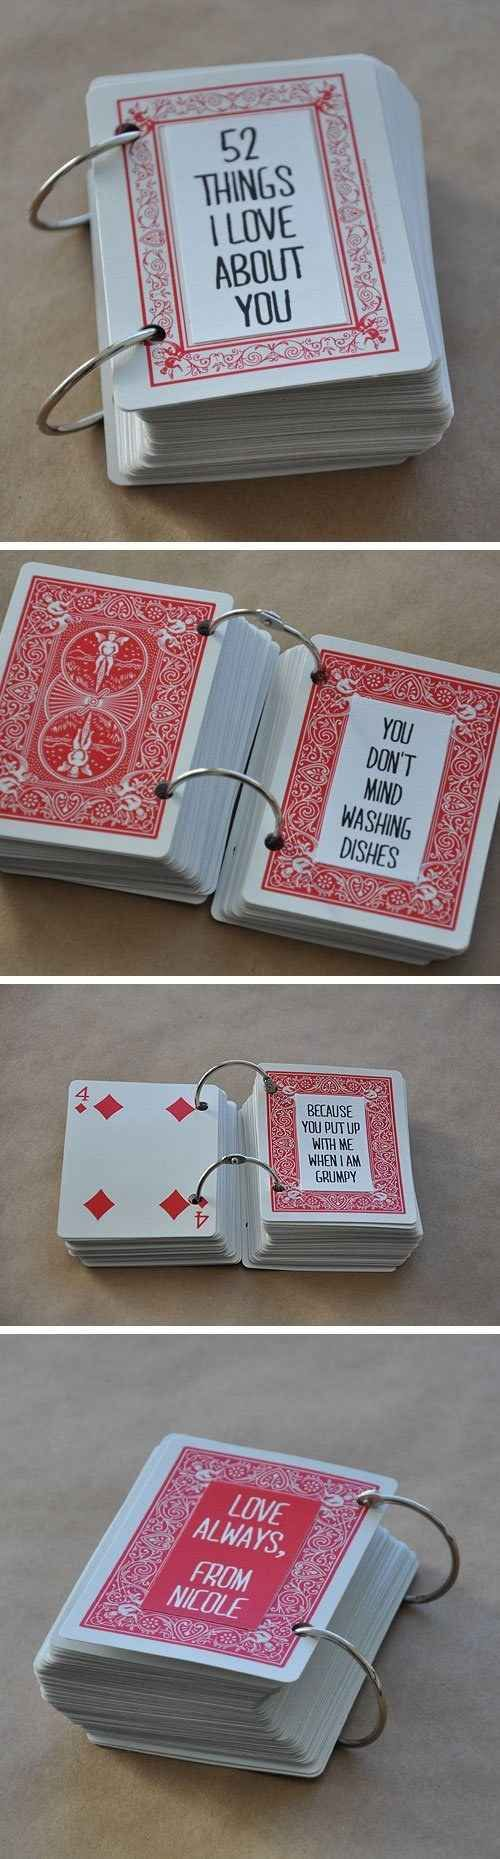 Transform a deck of cards into thankful thoughts or memories.